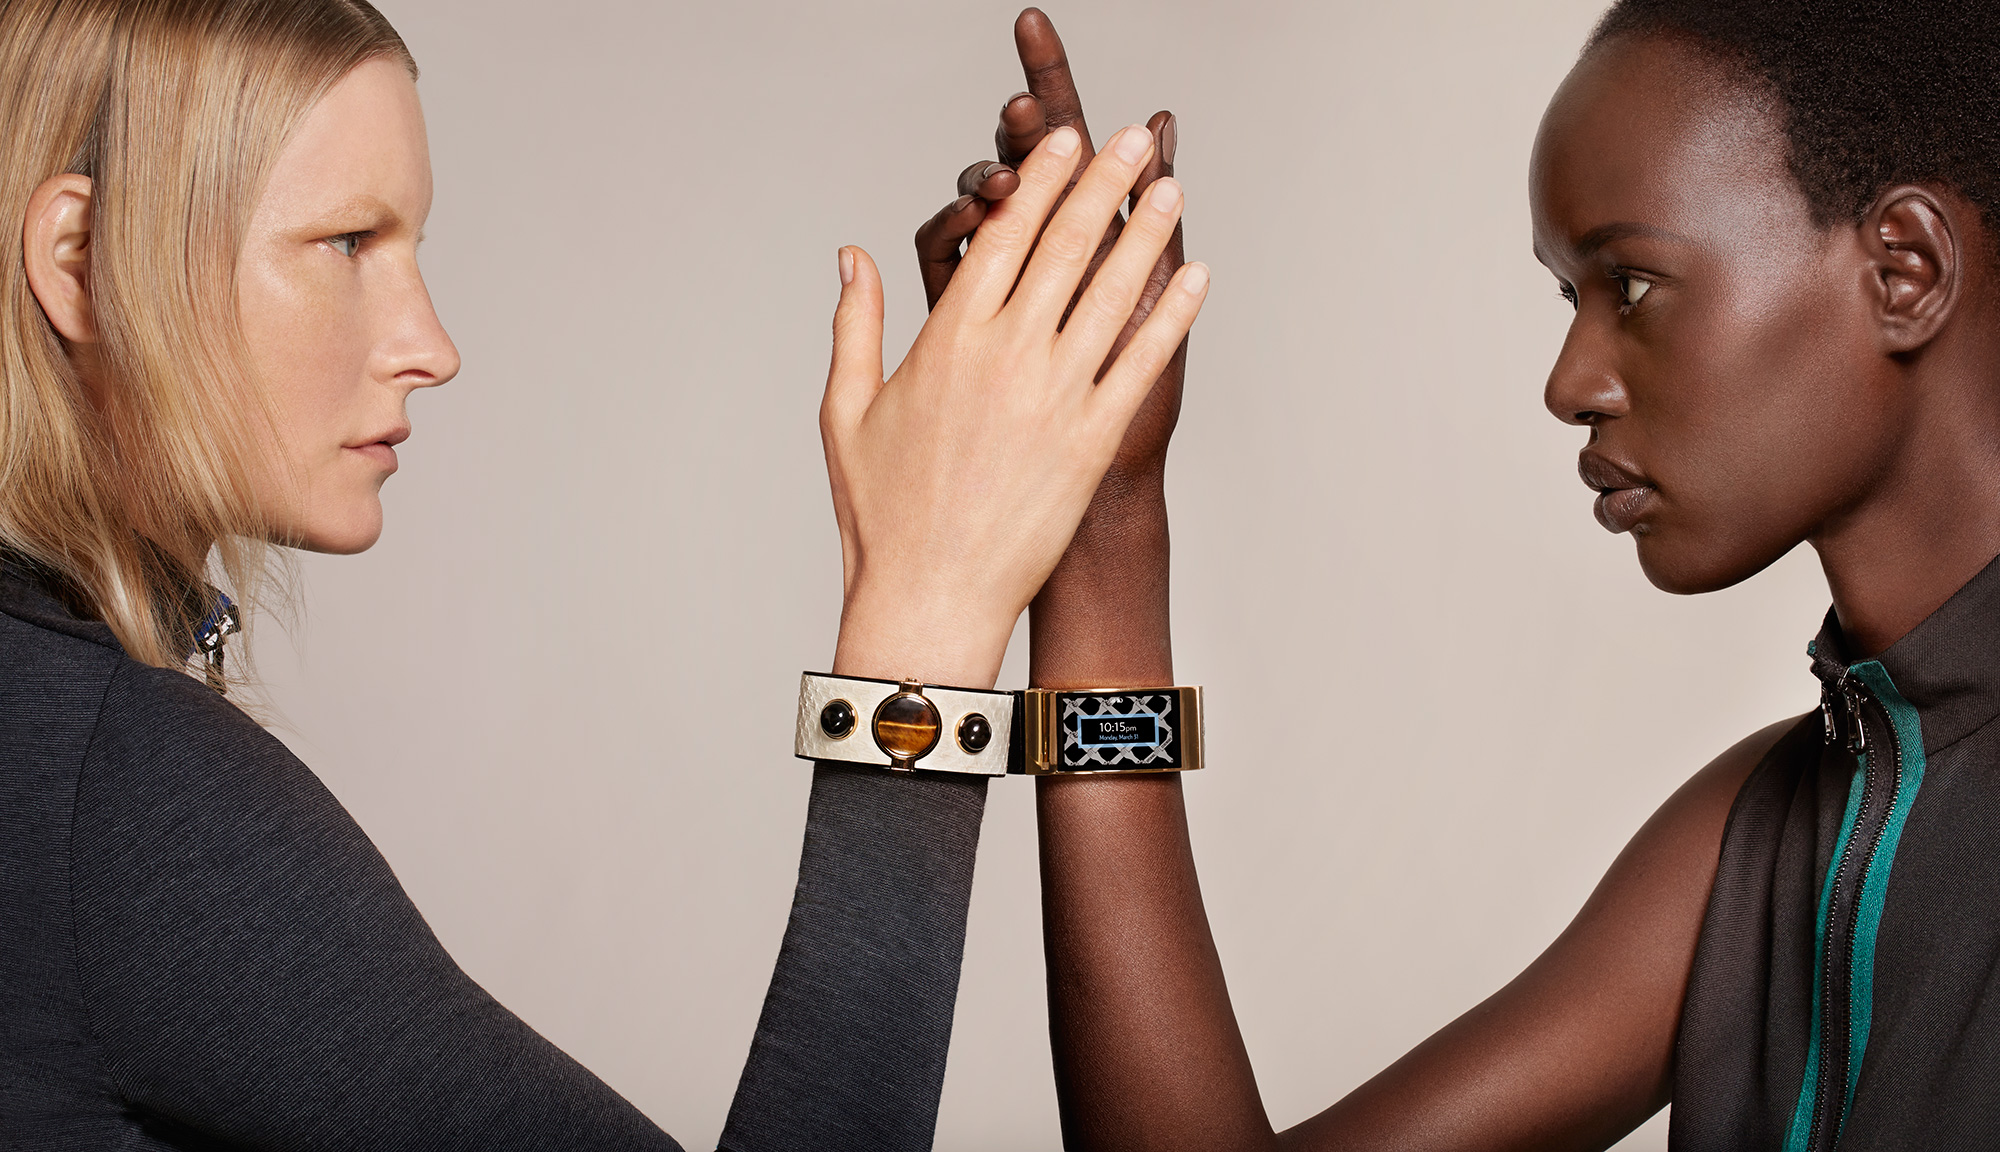 Intel and Opening Ceremony introduce a stylish smart bracelet for women